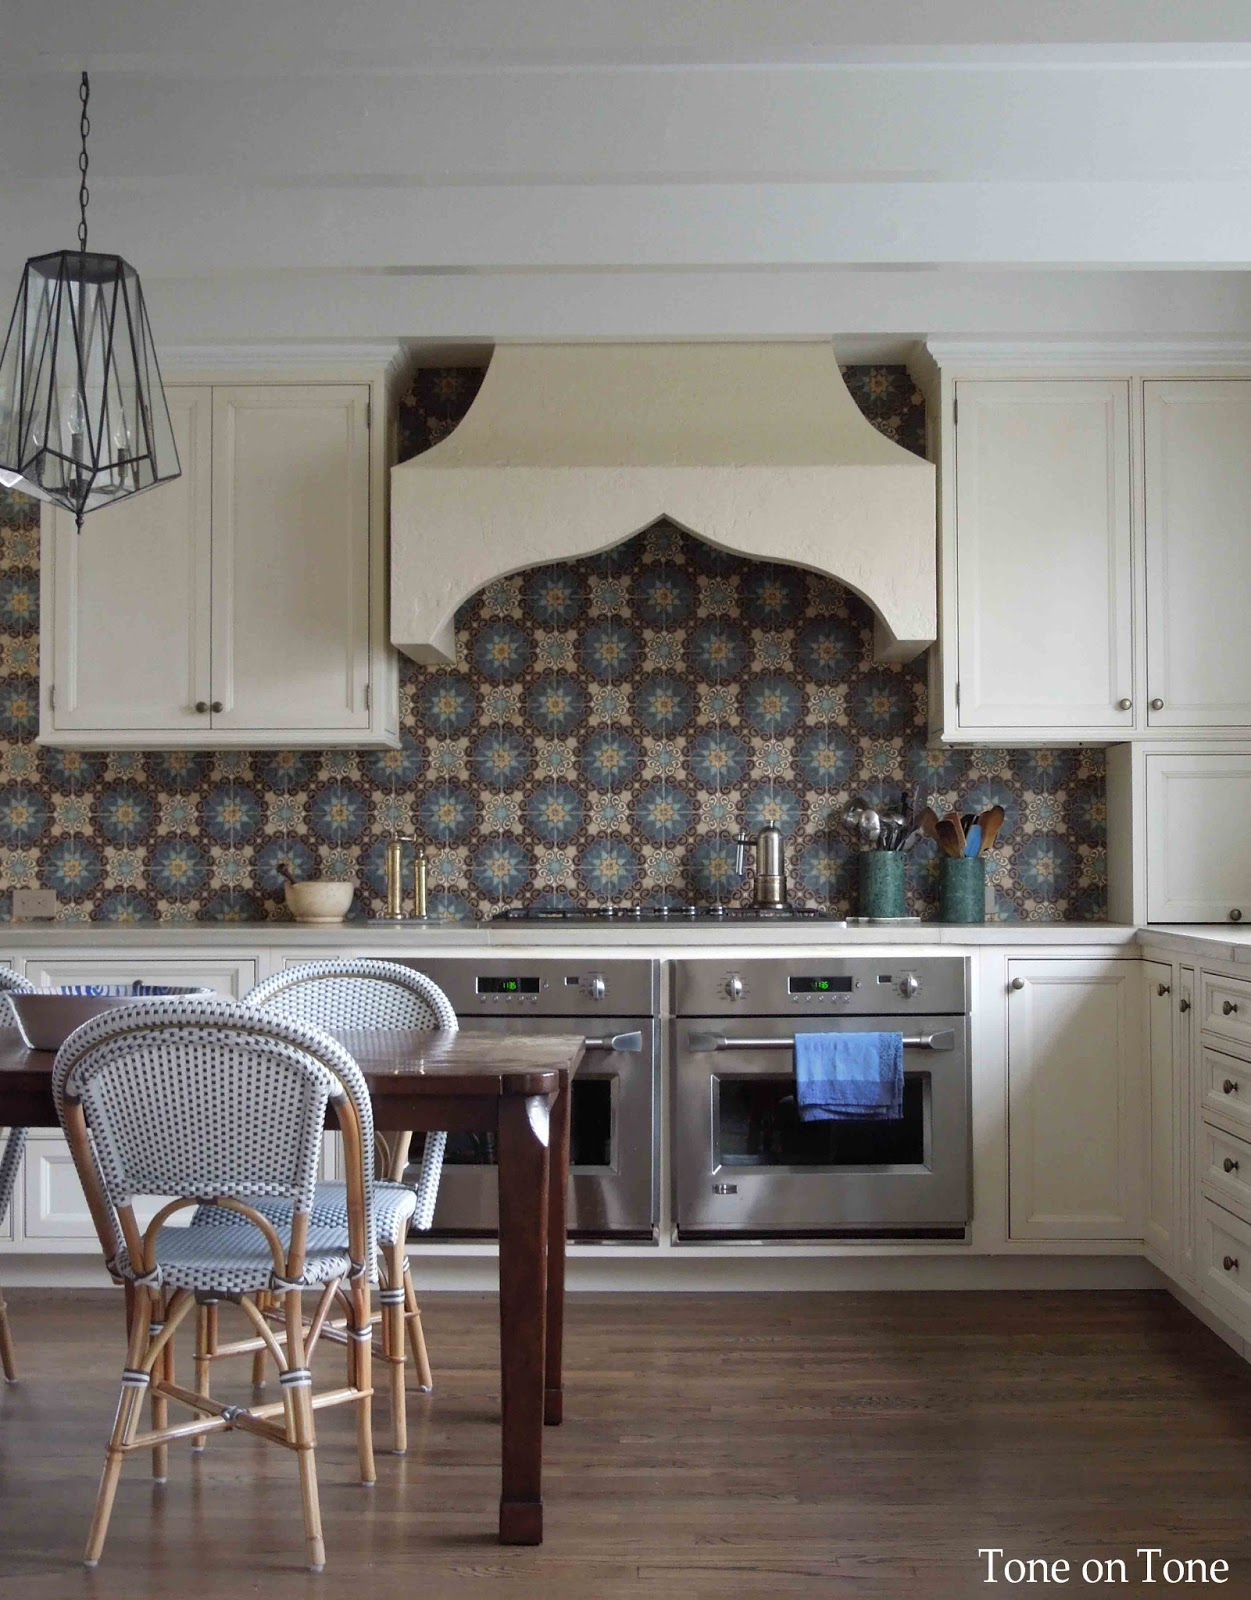 Tone on tone morocco reflections and a kitchen for Moroccan inspired kitchen design